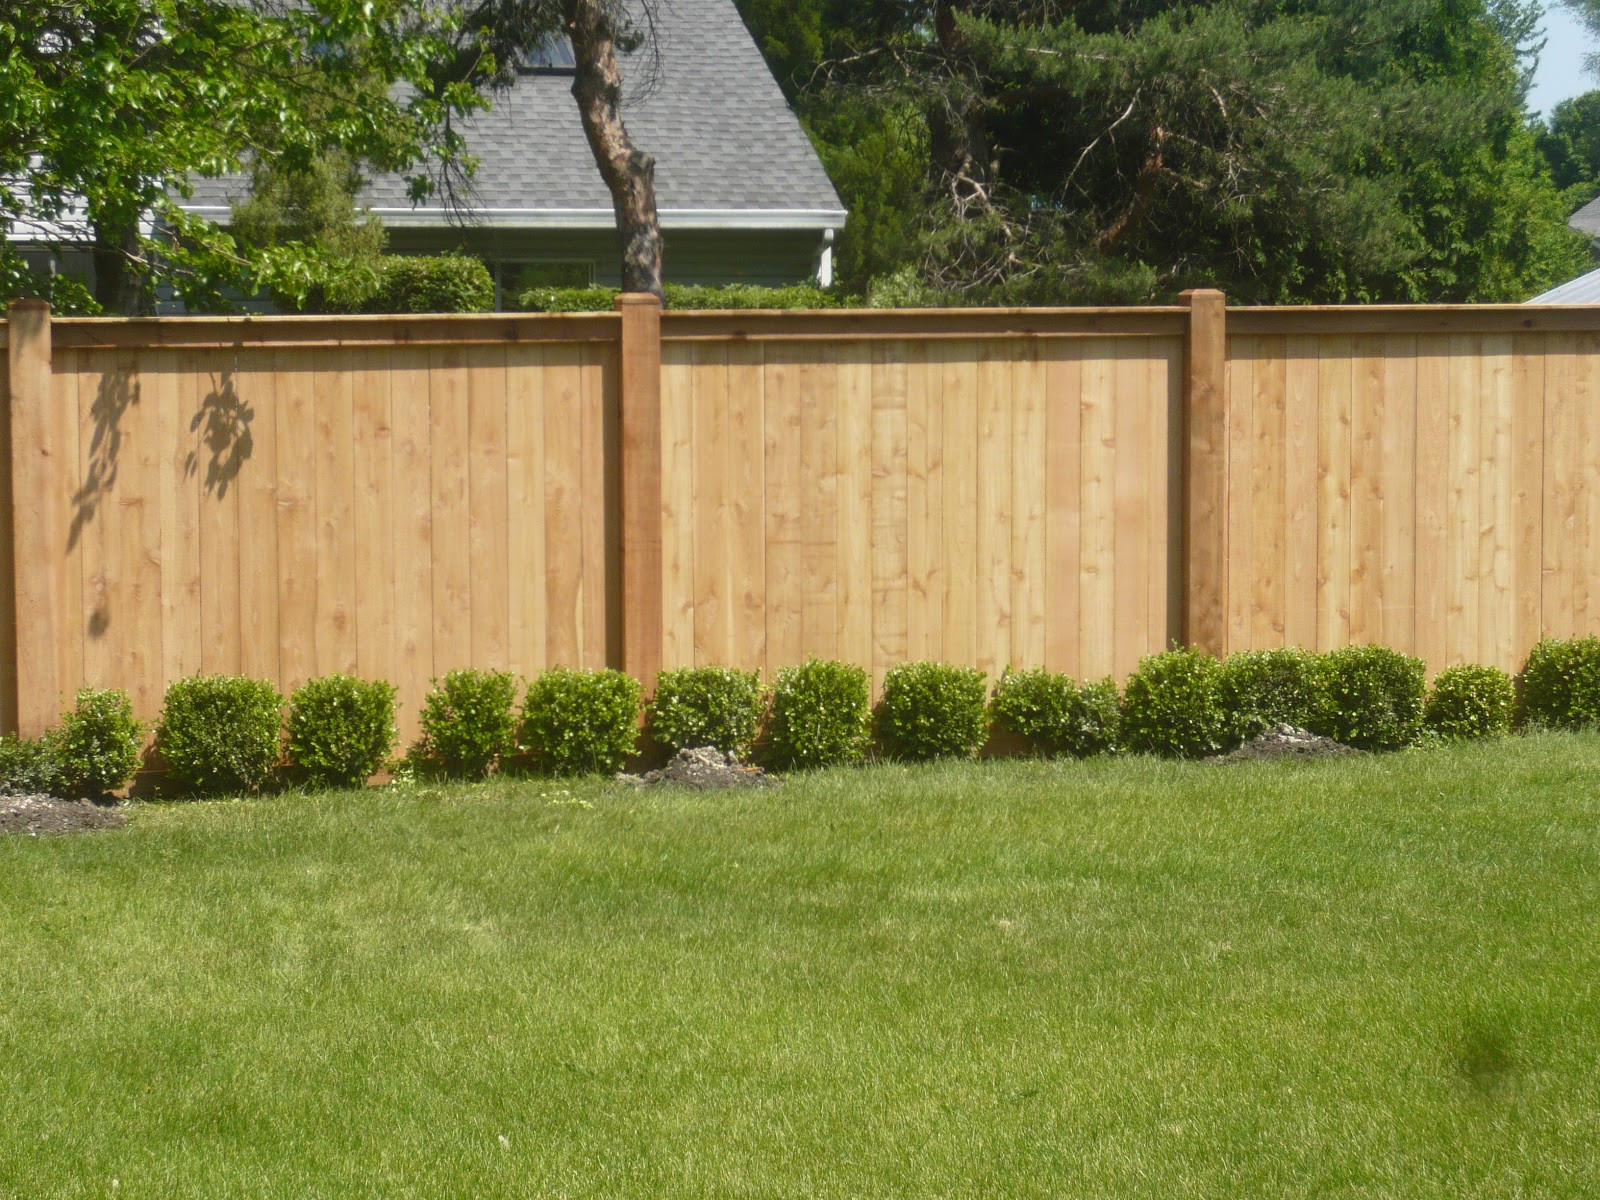 Fence Pictures For Backyard  Dreams and Epiphanies Backyard Fence Before and